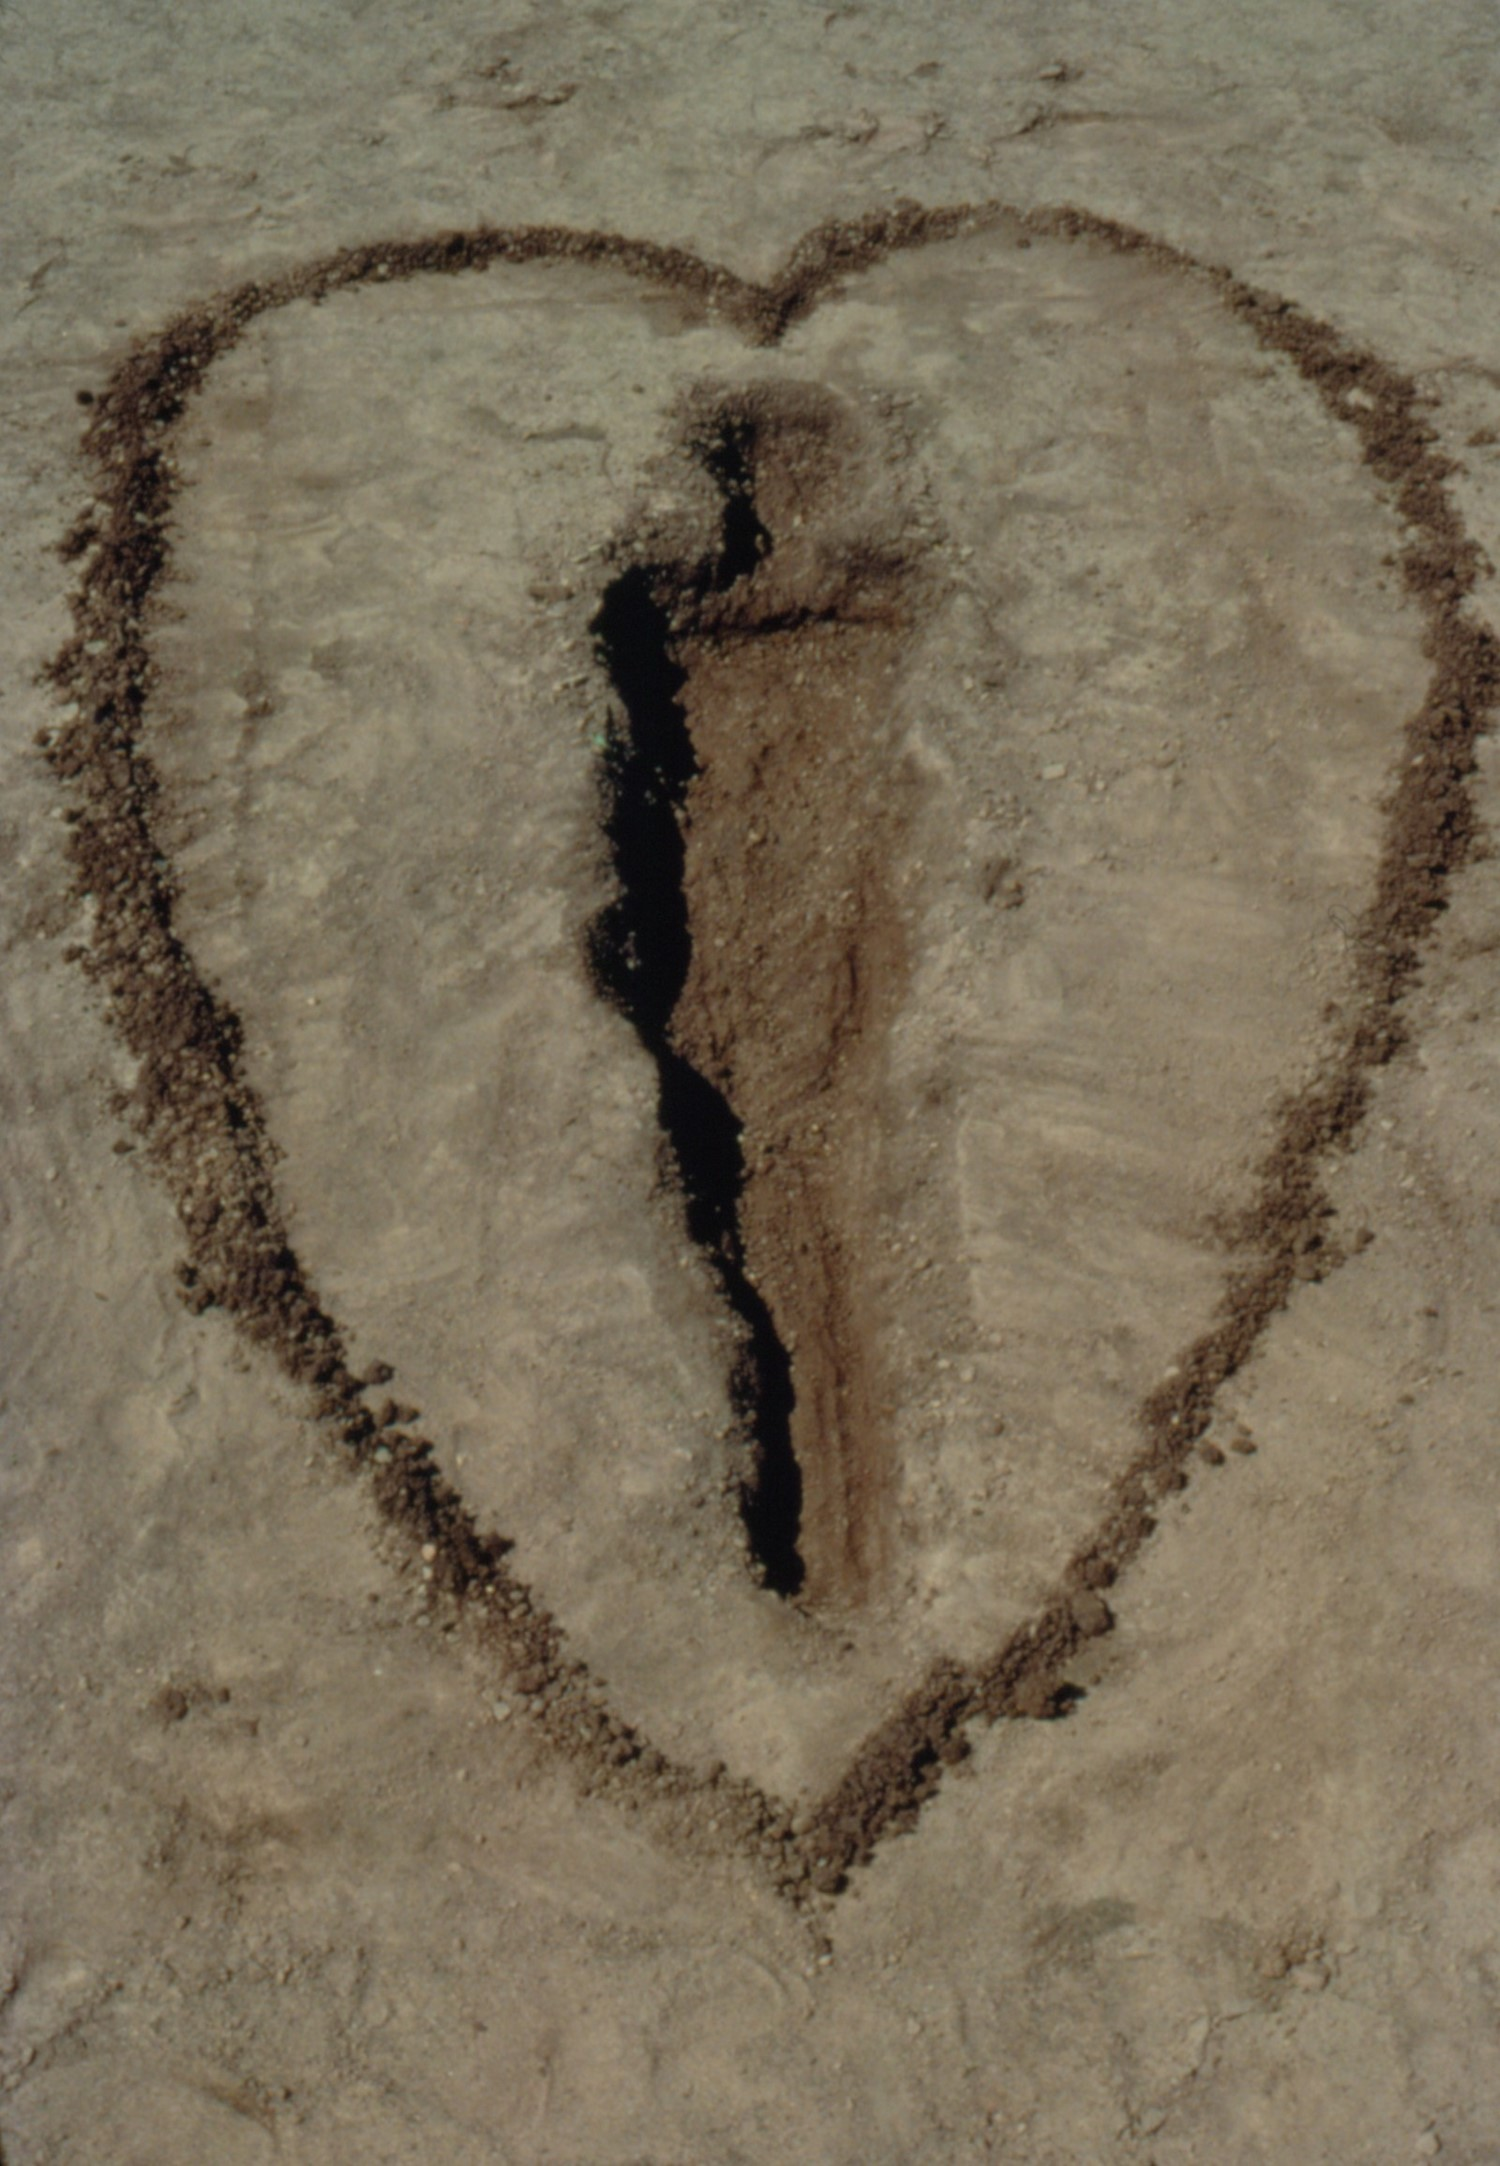 GL 3965 - silueta in sand with heart